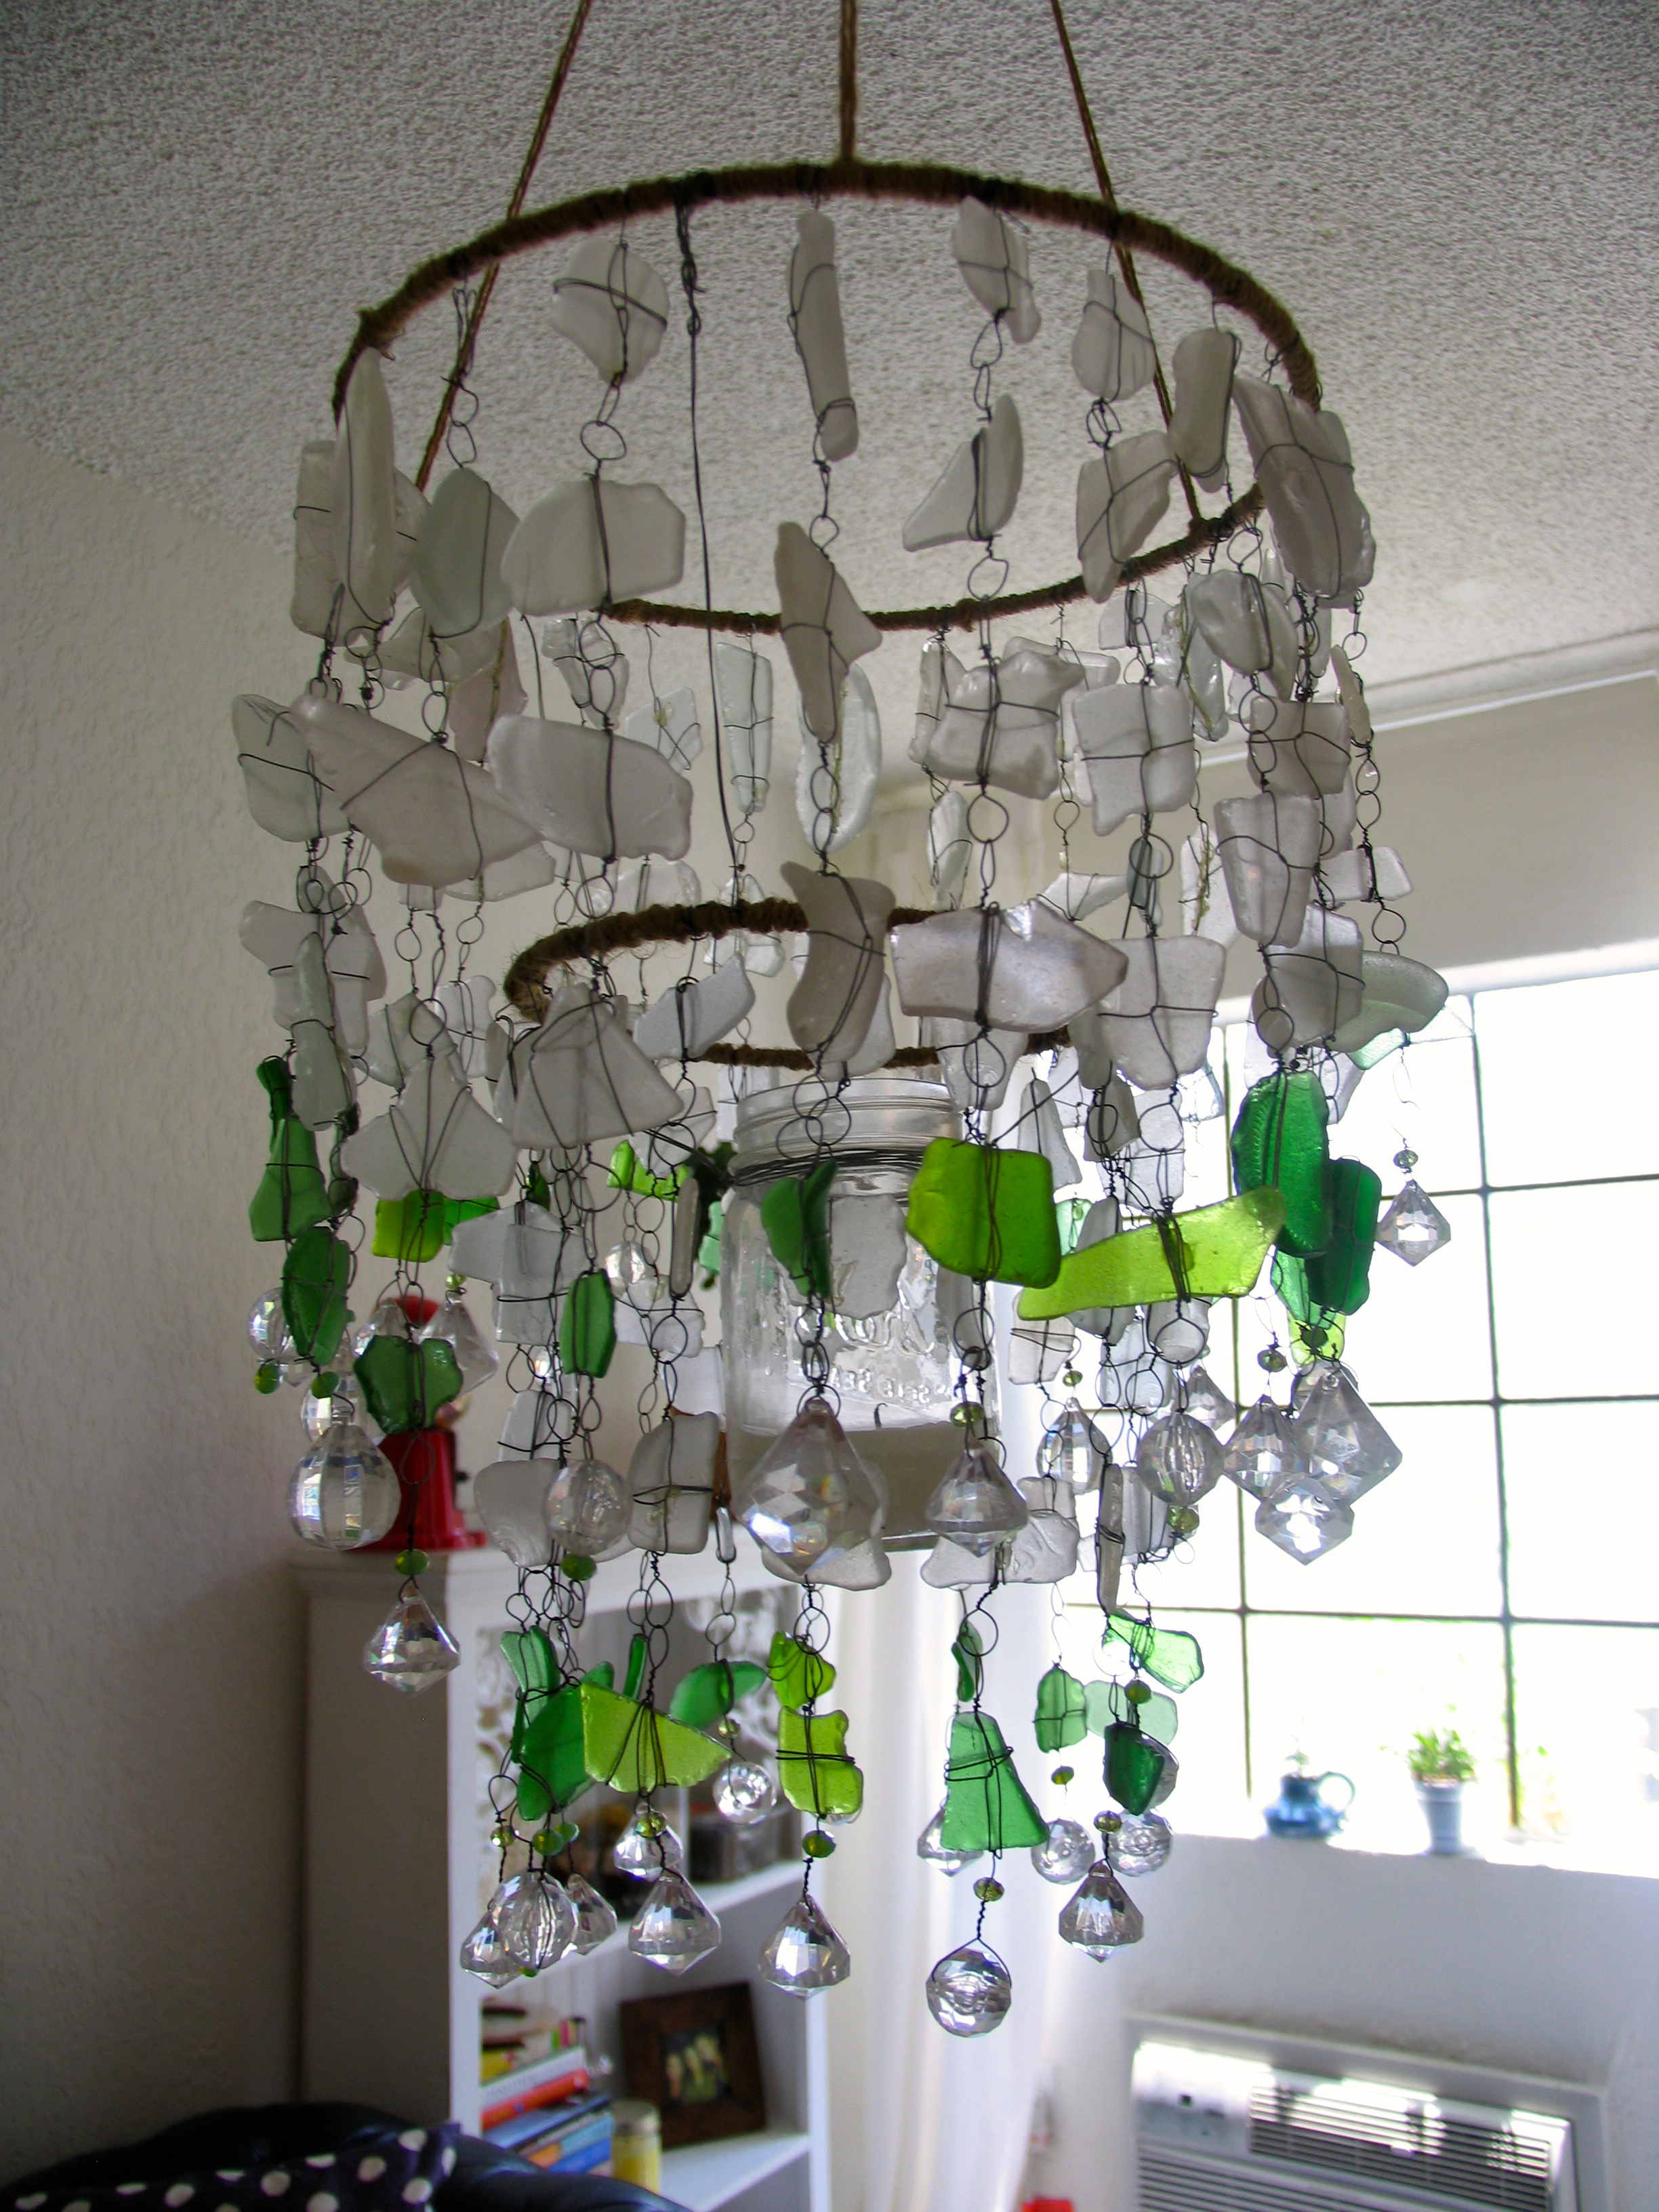 Sea glass chandelier ecospired diy sea glass chandelier by ecospired aloadofball Choice Image